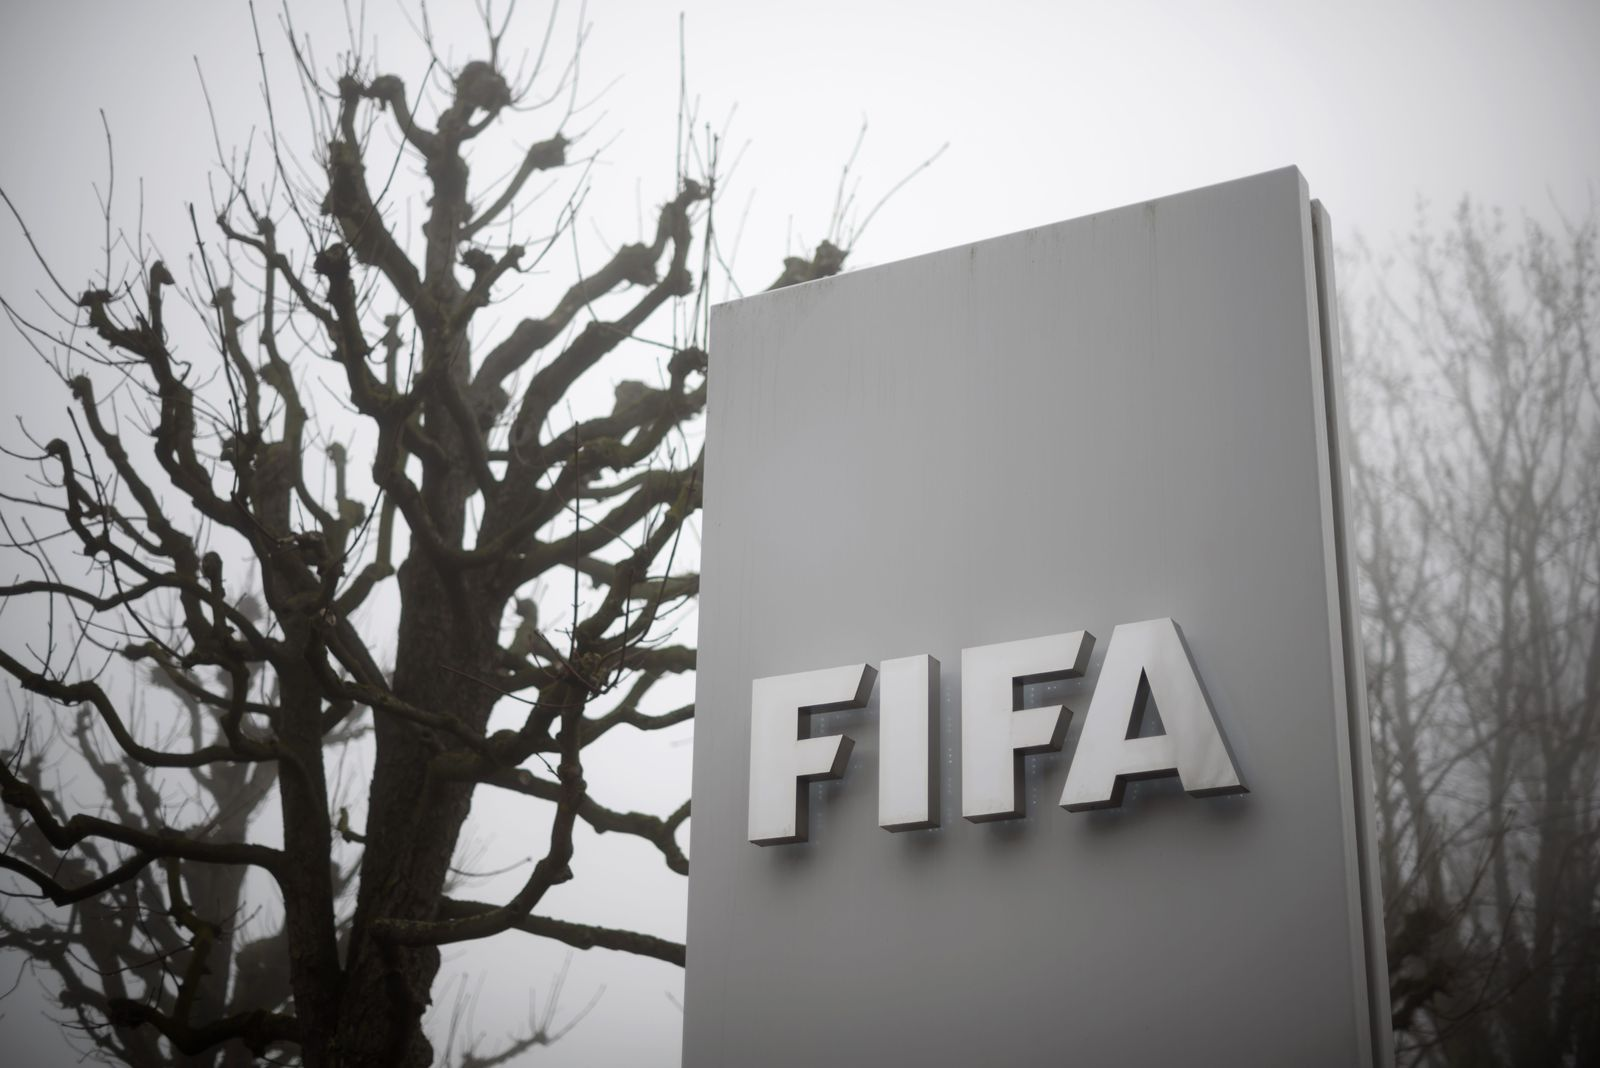 SWITZERLAND-FBL-FIFA-CORRUPTION-ARRESTS